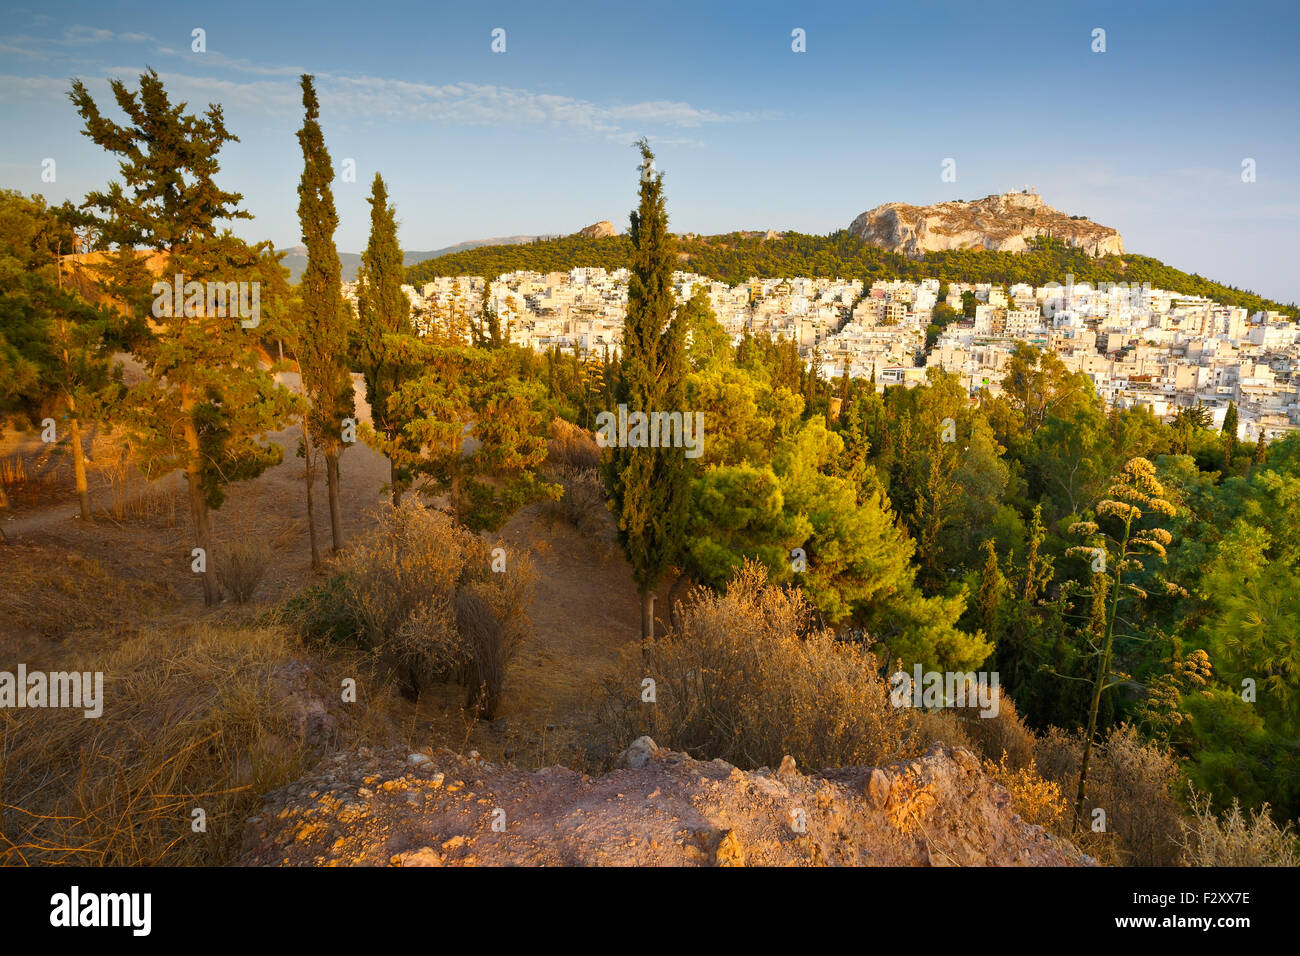 View of Athens and Lycabettus hill from Strefi Hill. - Stock Image